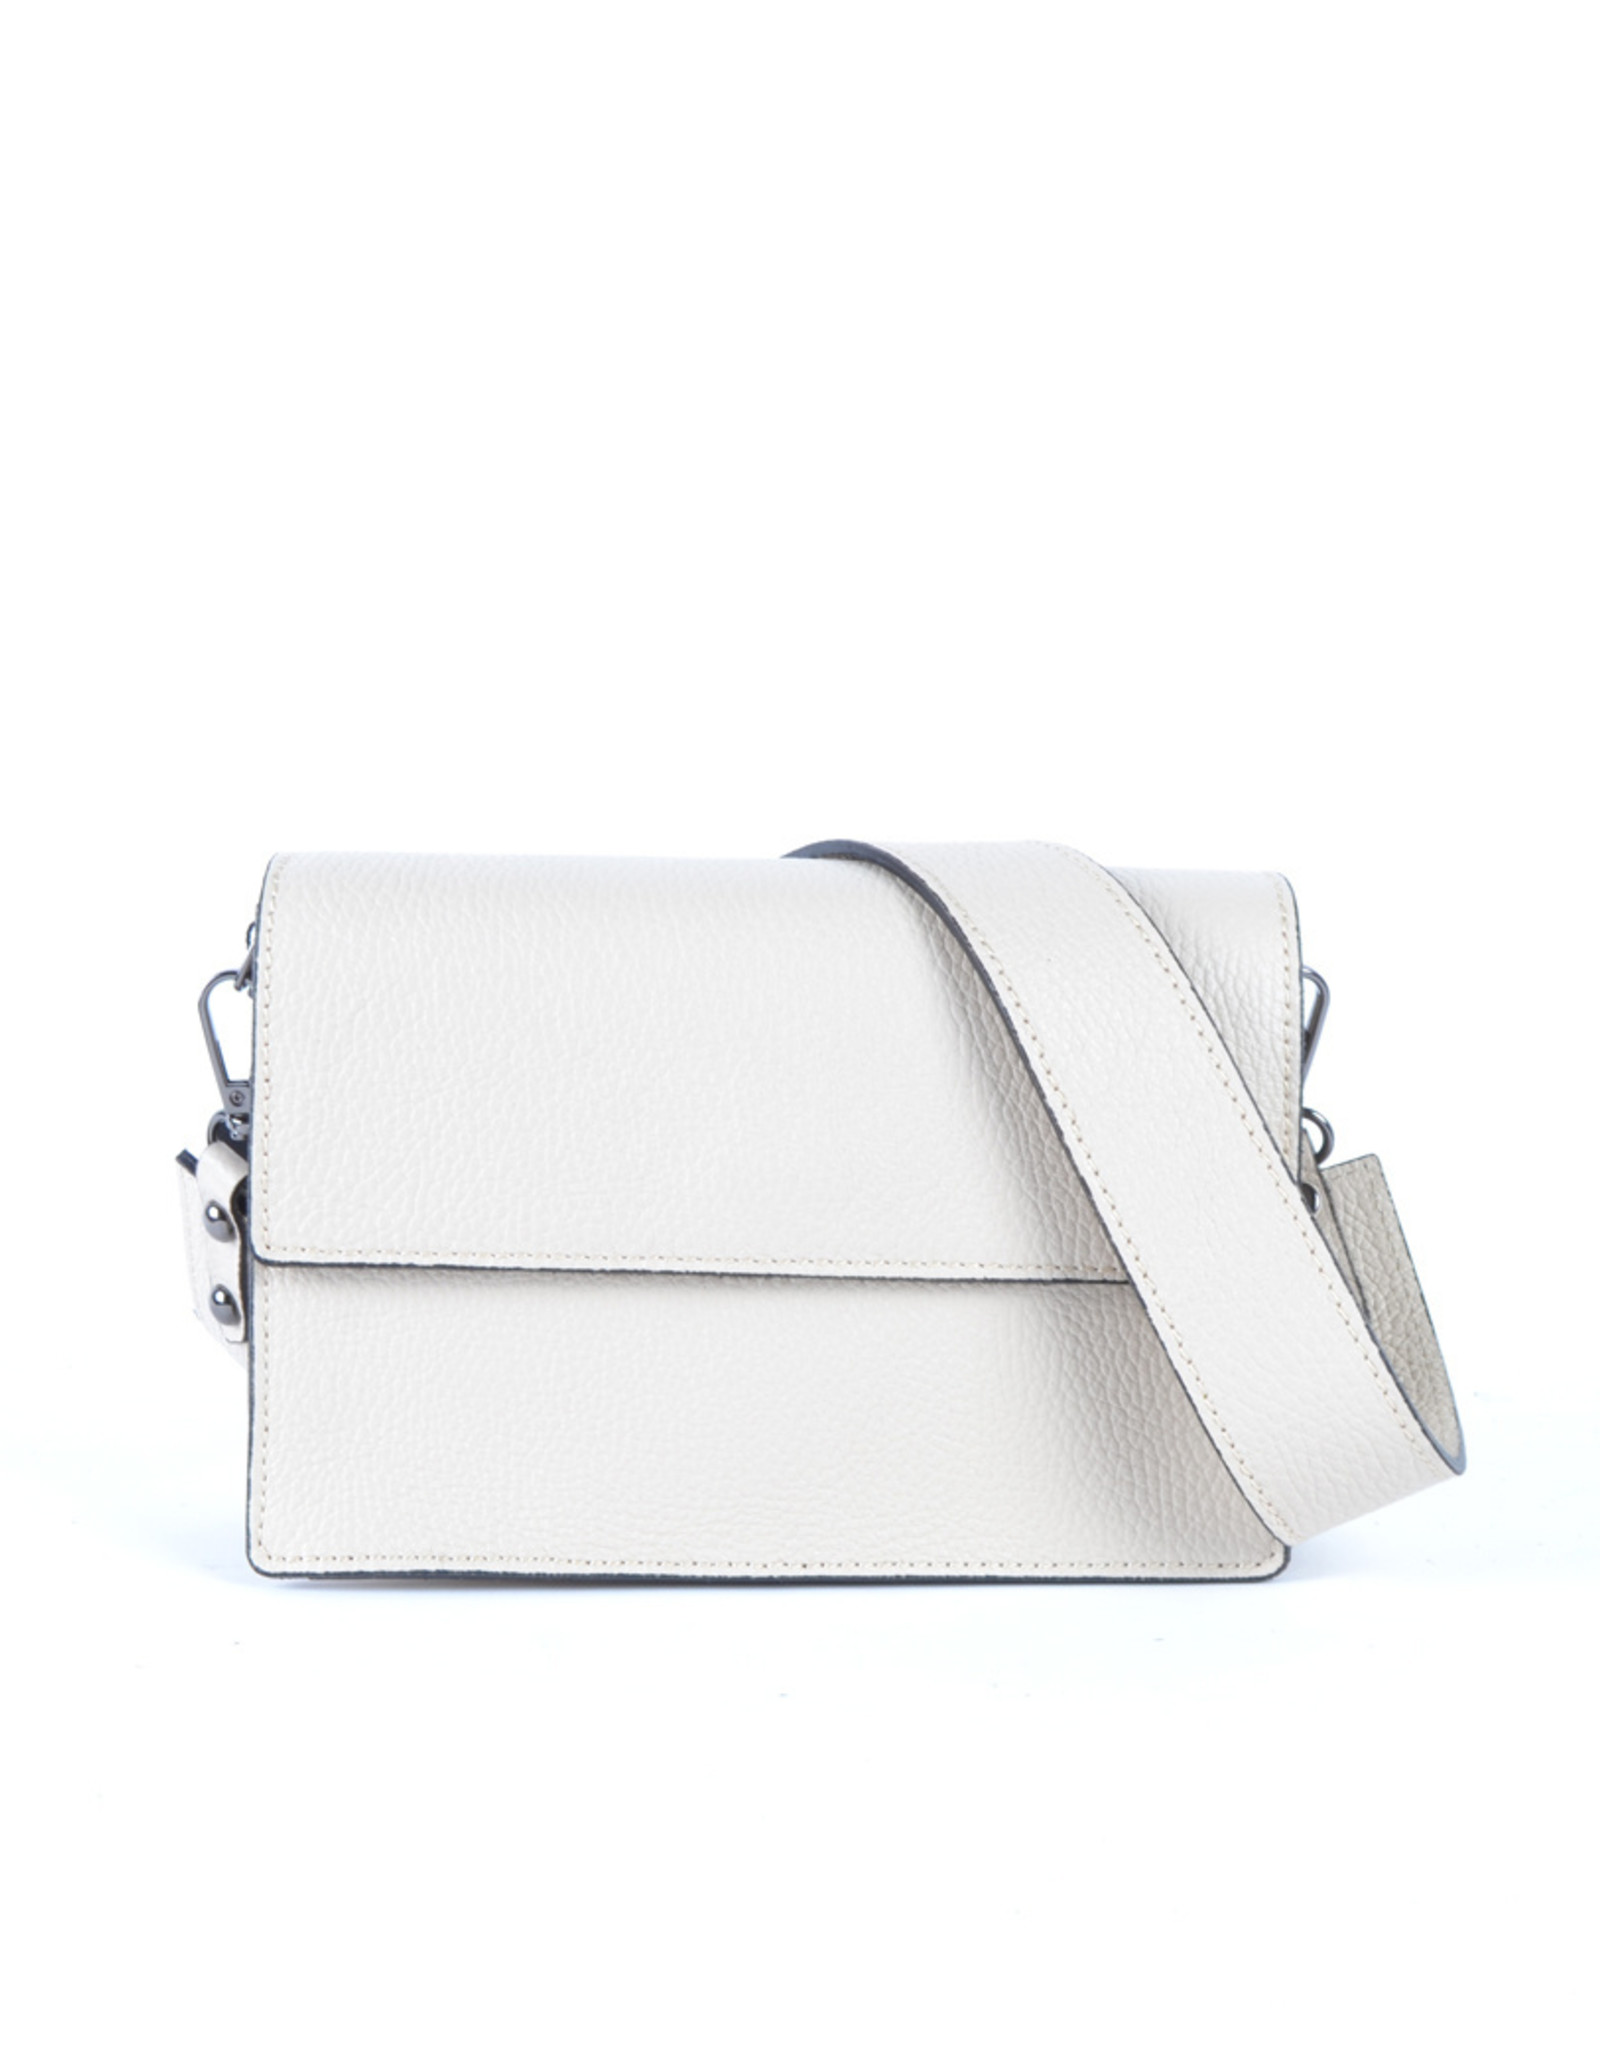 Leather white bag with two different shoulderbelts.